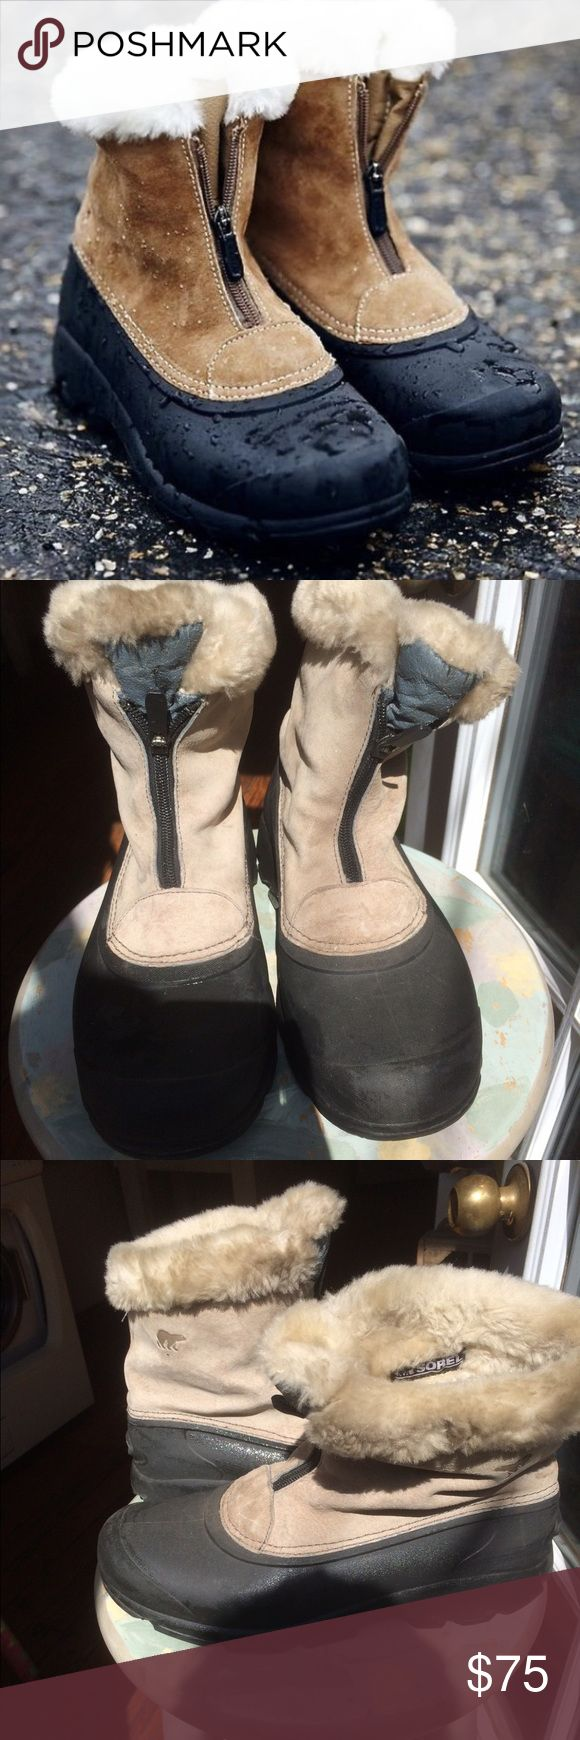 Sorel Snow Angel Tan Waterproof Thinsulate boots Host PickPre-loved Sorel Snow Angel Zipper Waterproof suede leather boots. Faux fur lining w/ 200g insulation: Removable EVA footbed Outsole: Waterproof  thermal rubber shell w/ outsole 4 enhanced traction. Lightweight-this Thinsulate boot is temperature-rated to -25 degrees Fahrenheit, awesome against inclement weather. See pics for condition these need a little cleaning- please ask questions b4 buying- can upload more pics. Looking for a new…